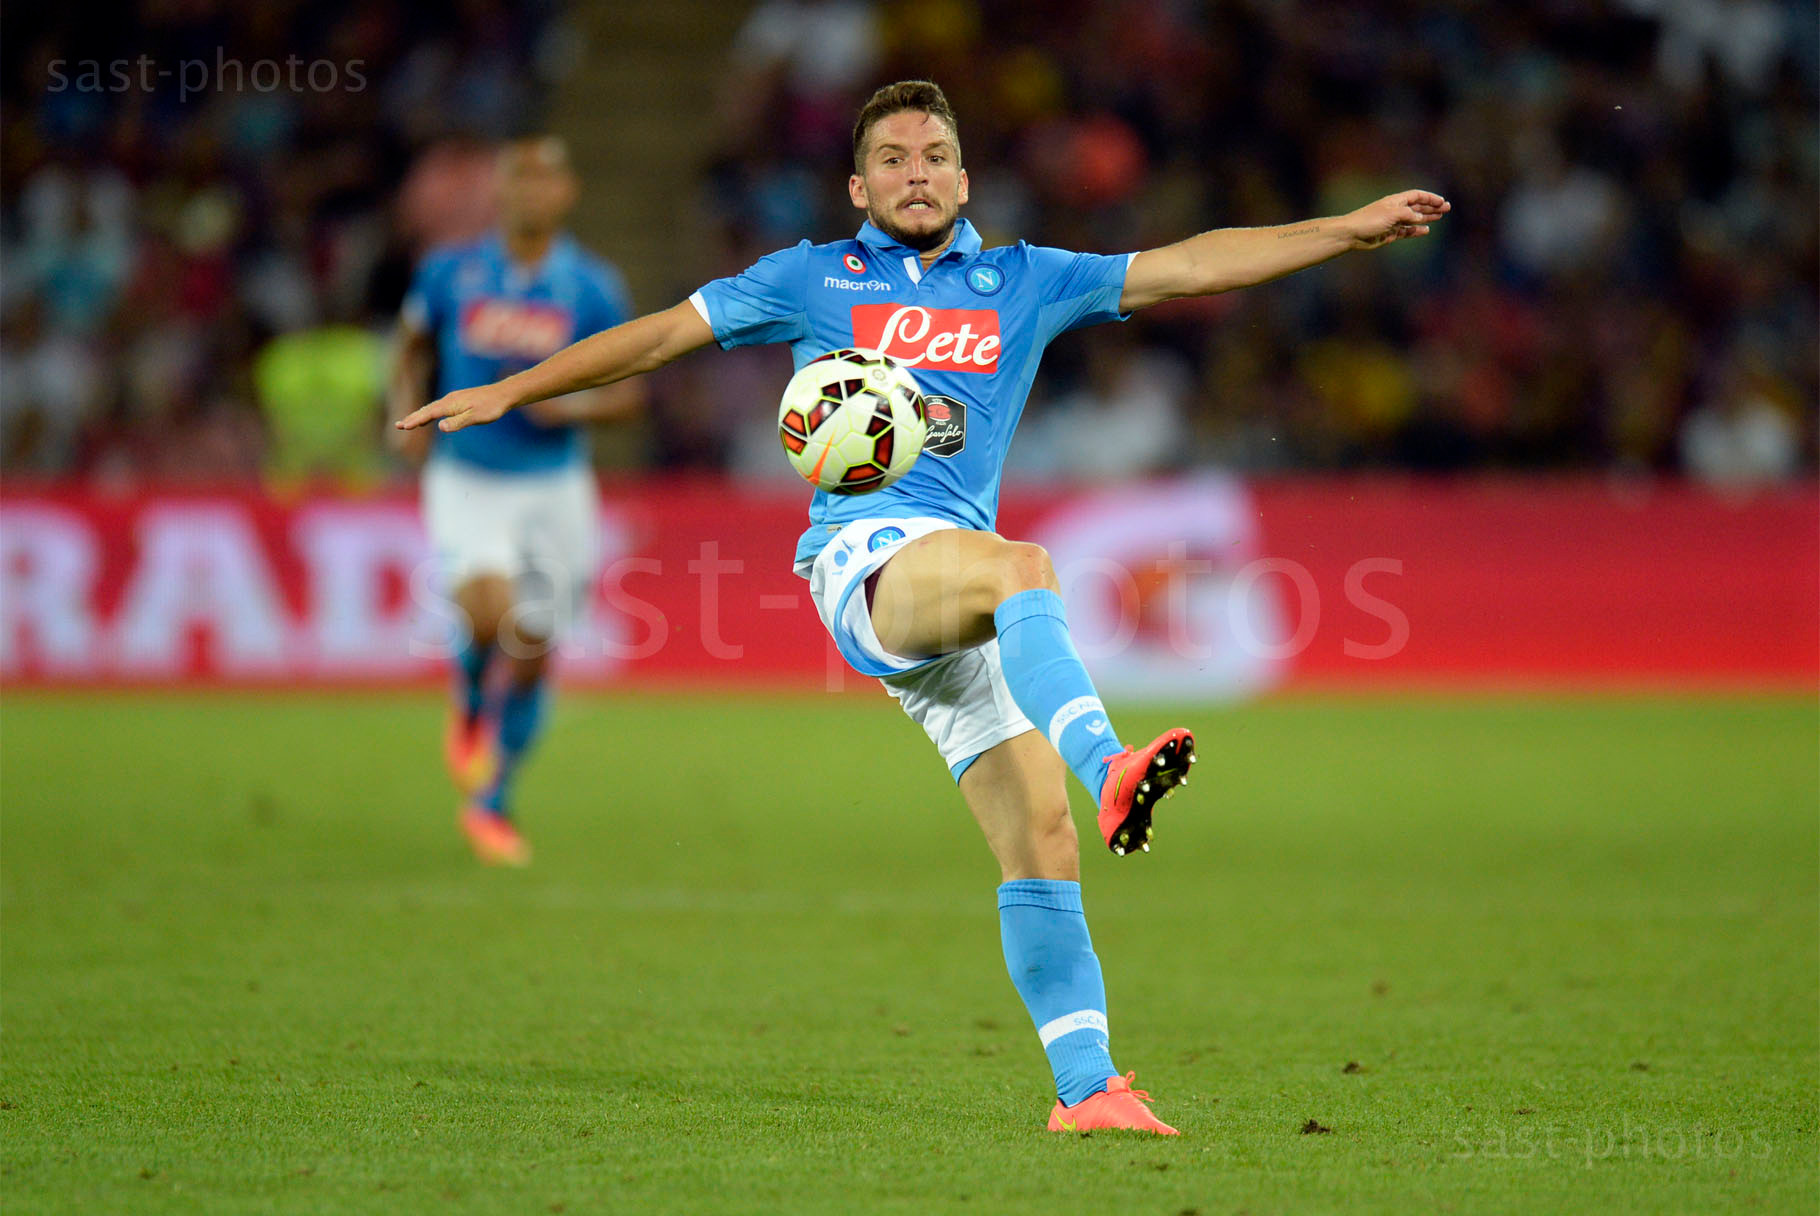 Dries Mertens (Napoli)